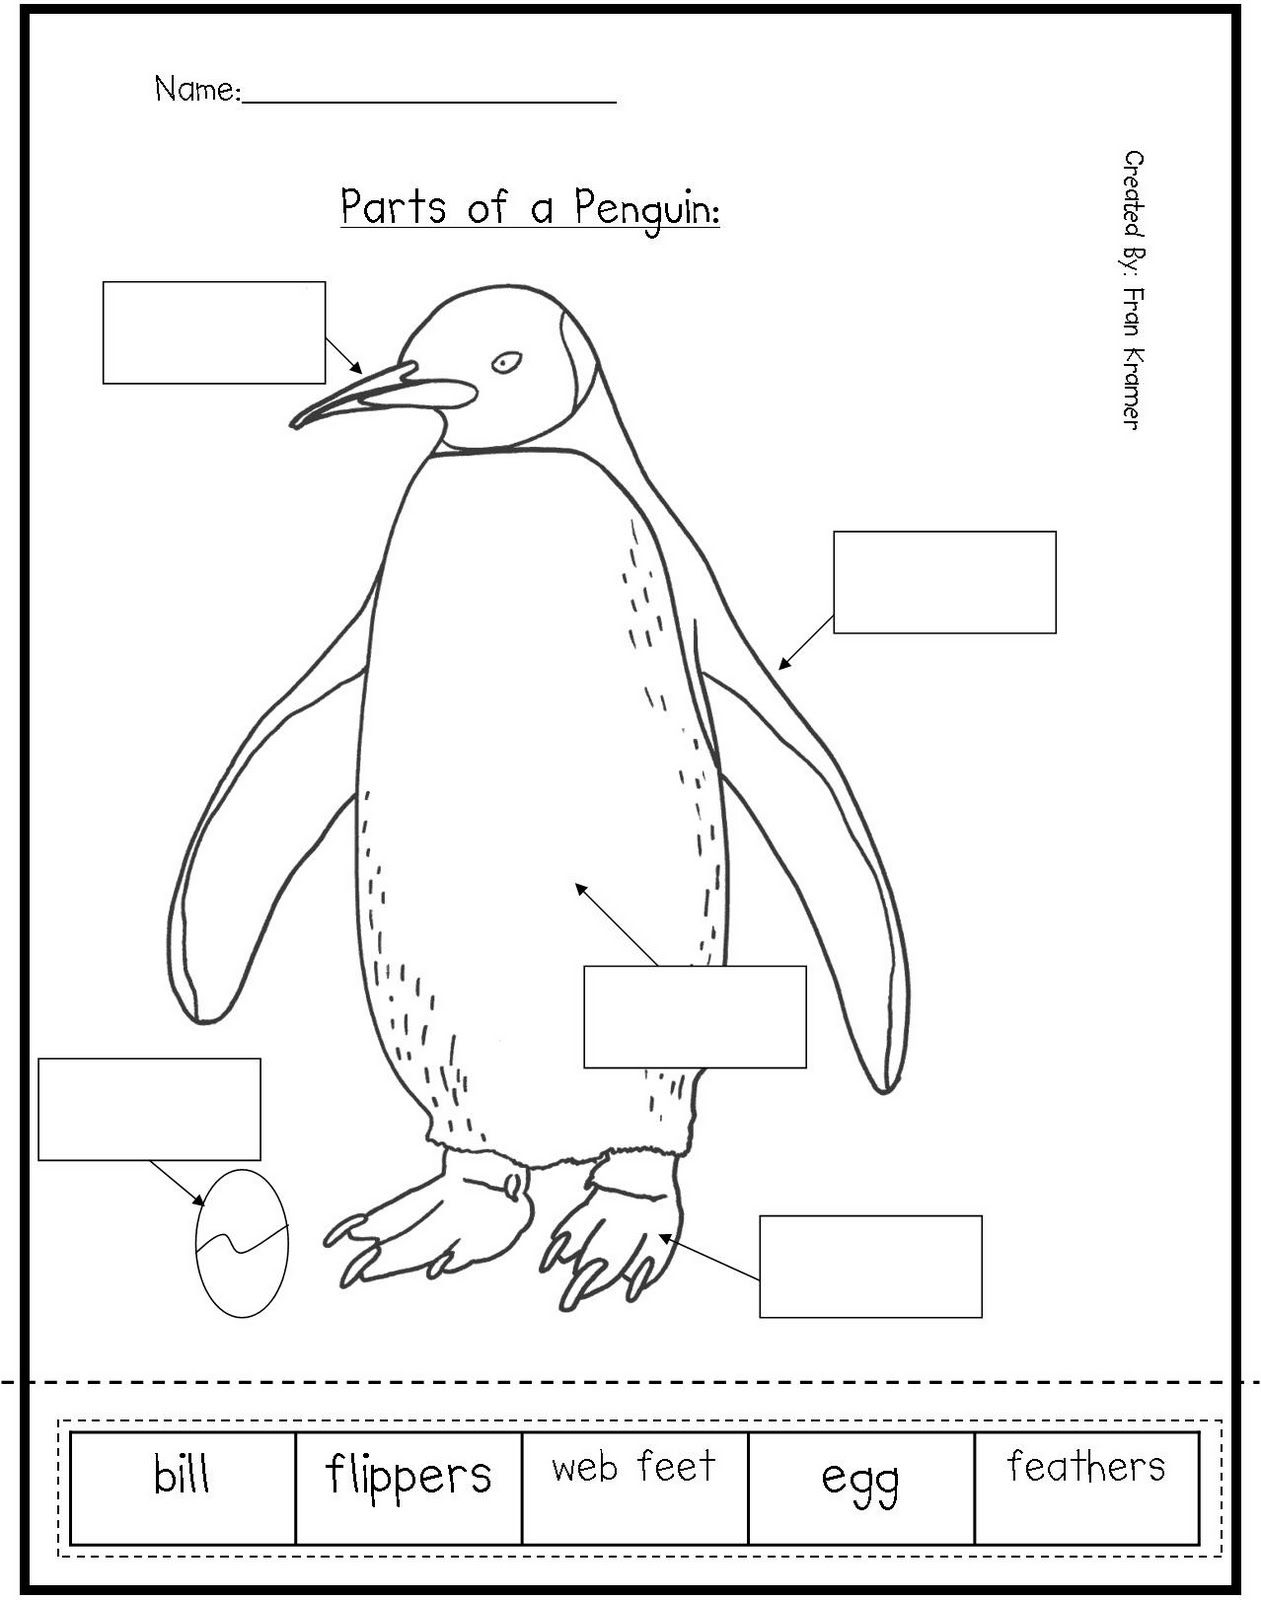 Penguin Labeling Worksheet